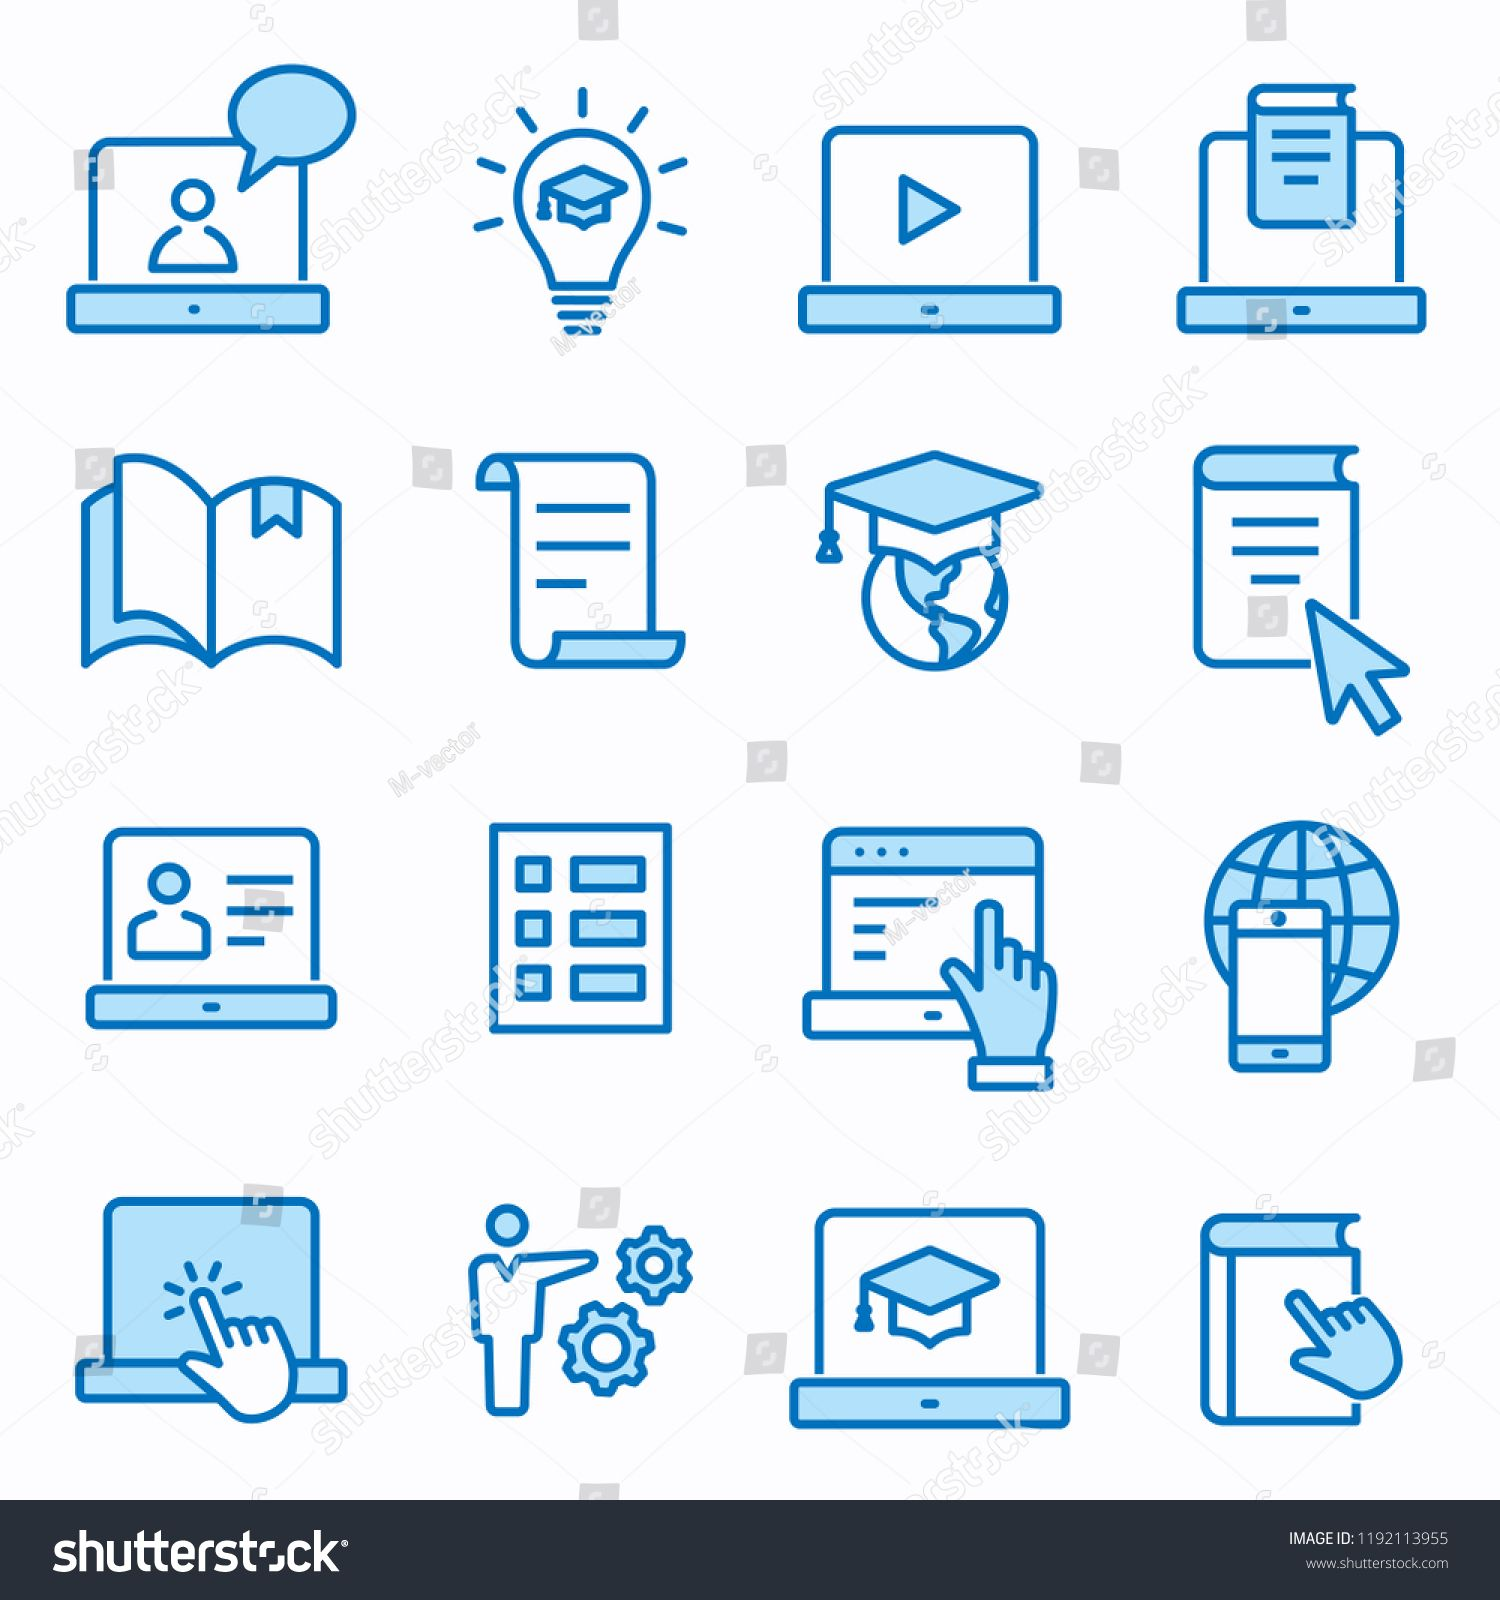 E Learning Distance Education Flat Line Icons Set Of Graduation Cap Training Laptop Learn Online Webi Graphic Design Projects Line Icon Distance Education